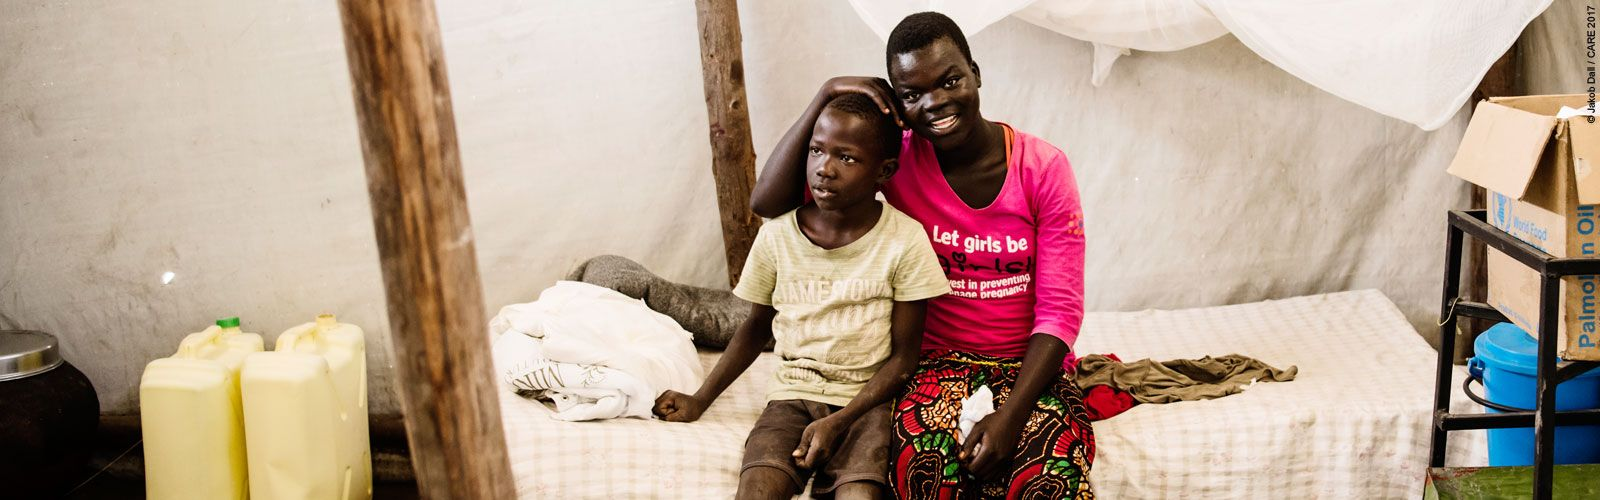 A teenage girl and her younger brother in a tent in a refugee camp in Uganda